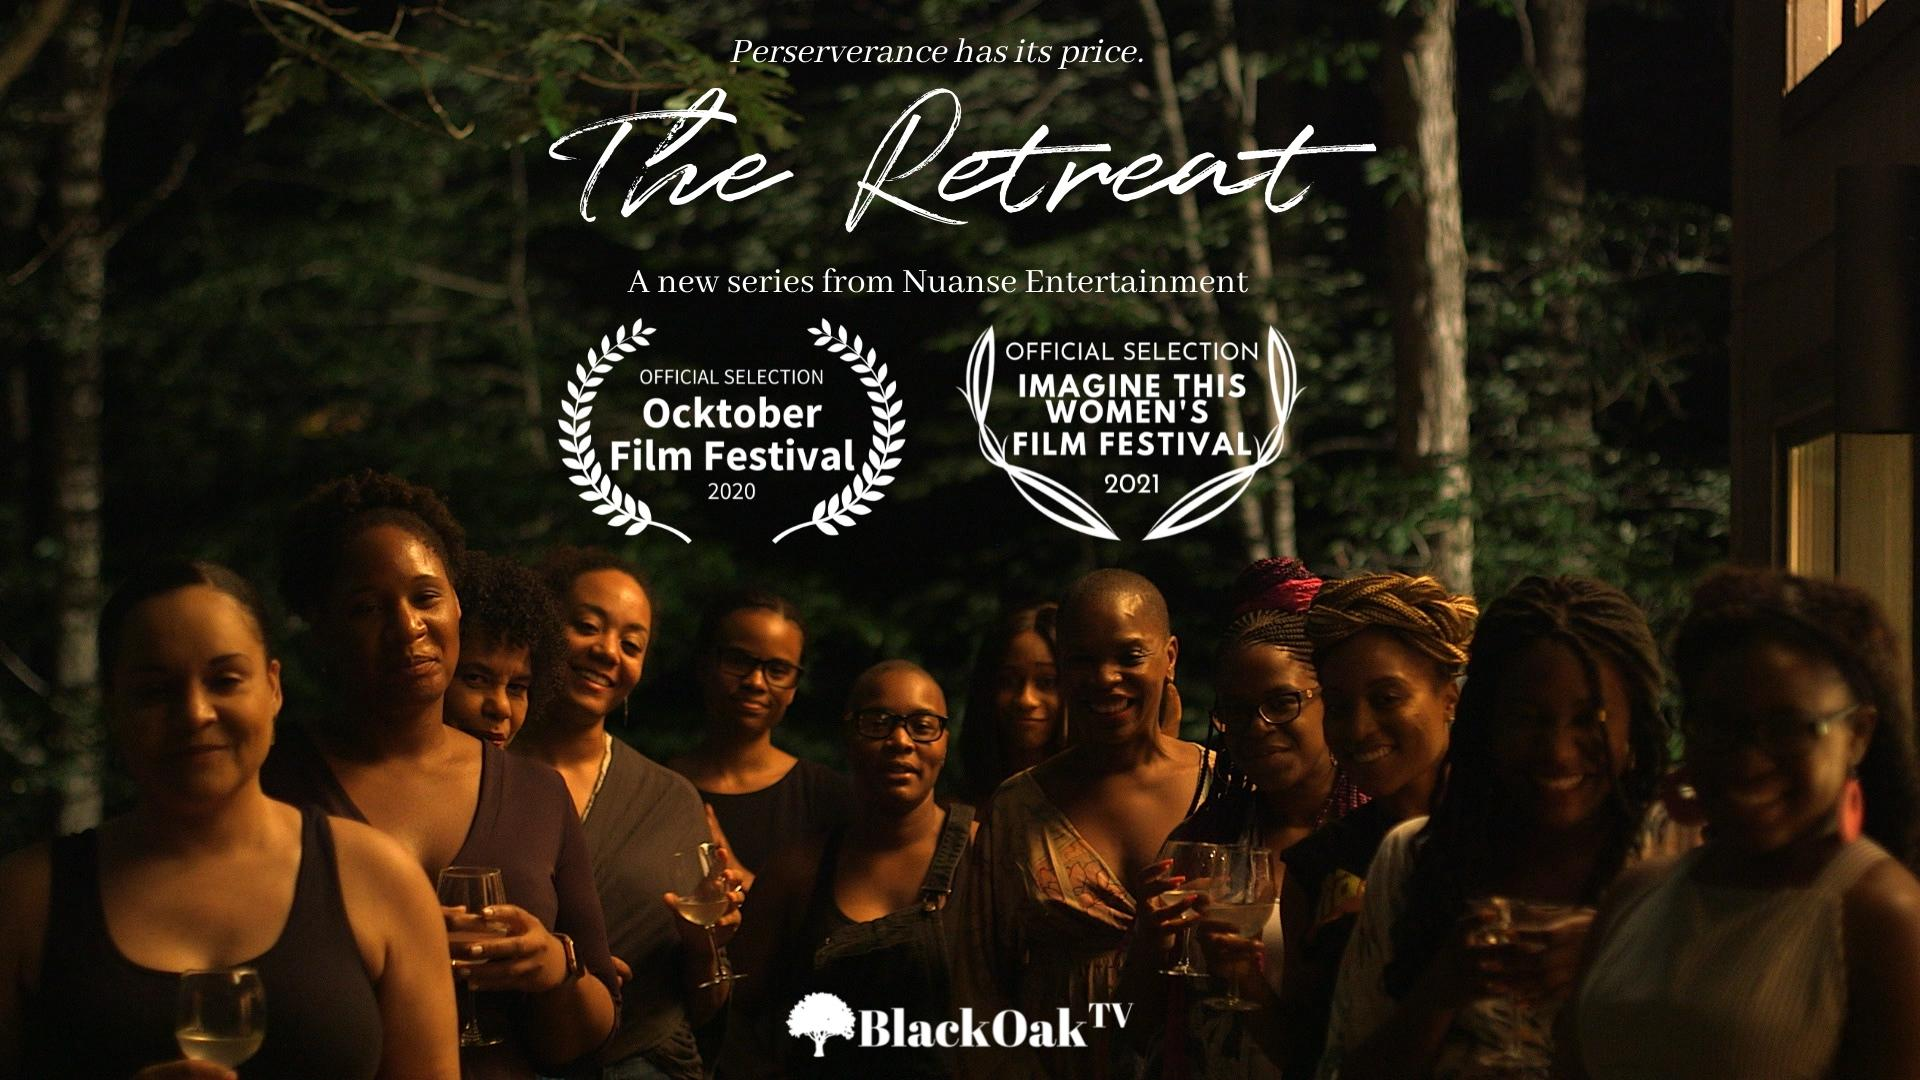 The Retreat - Episode 1: The Photo